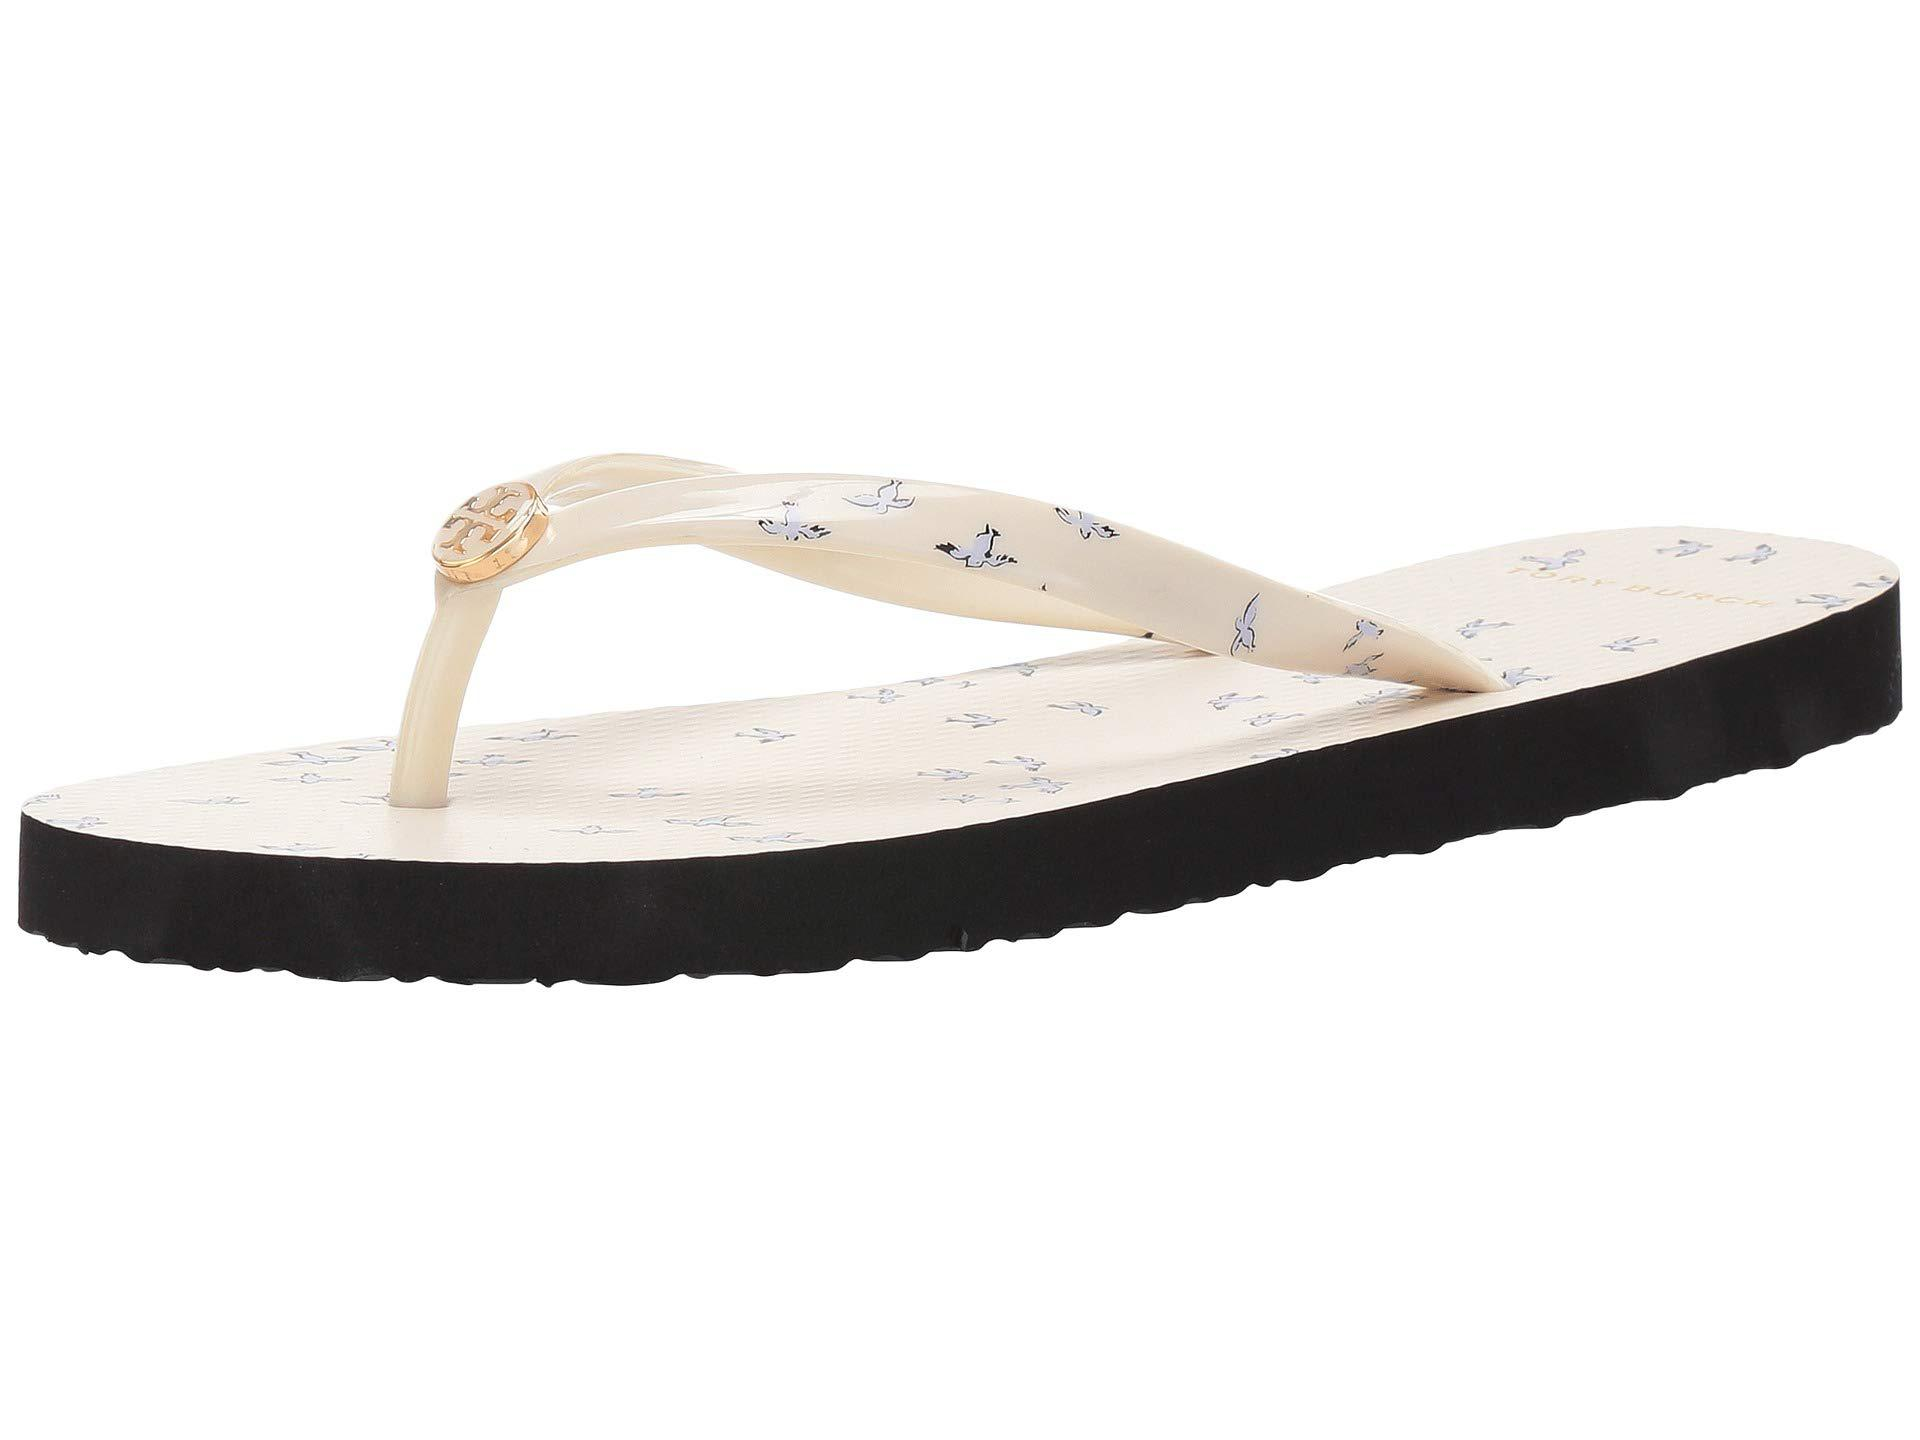 98dffea46c88 Tory Burch - White Printed Thin Flip-flop (ivory Early Bird) Women s Sandals.  View fullscreen